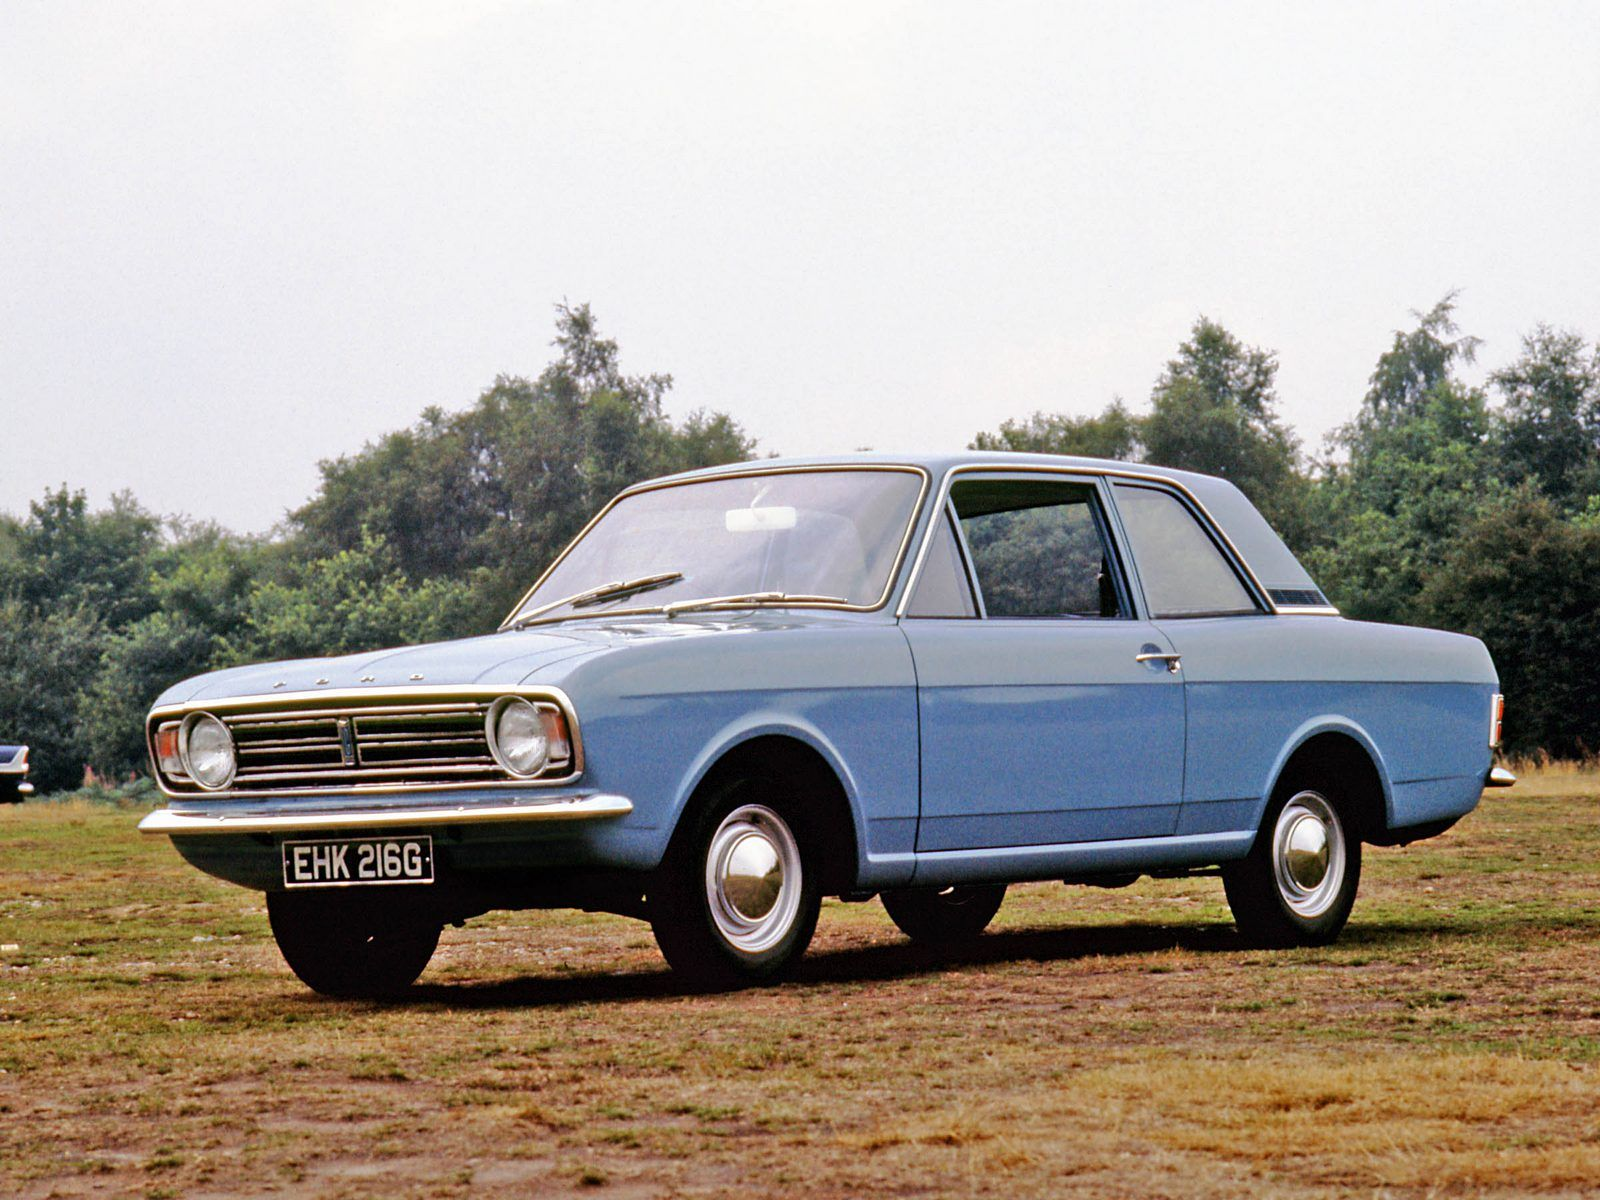 Retro Car Ford Cortina | Ford Cortina | Pinterest | Ford, Car ford ...